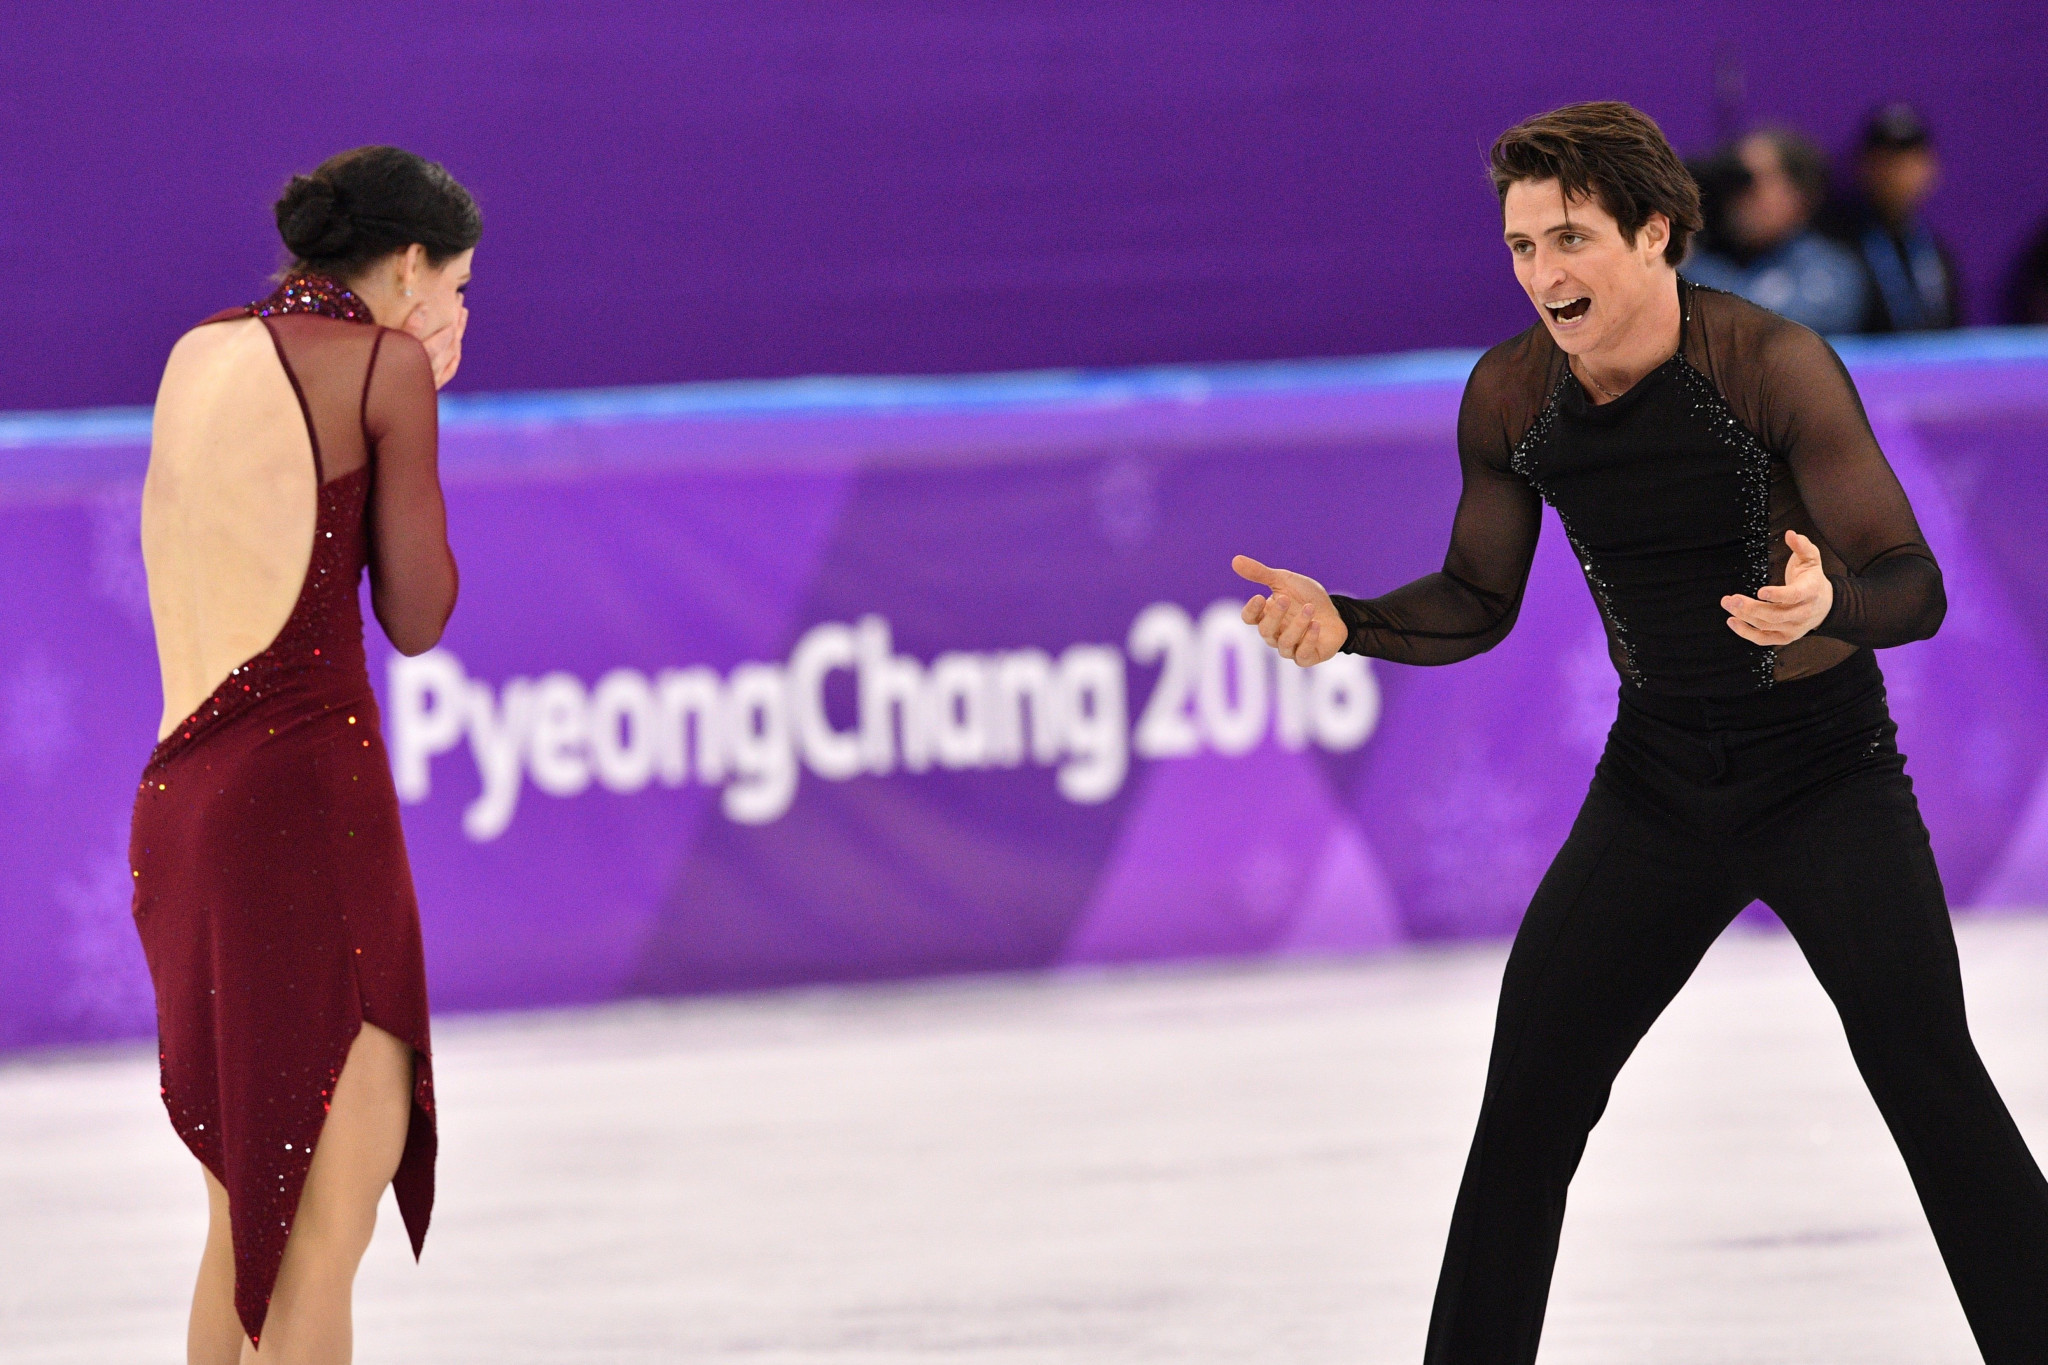 Canada's Tessa Virtue and Scott Moir re-gained their Olympic ice dance title at Pyeongchang 2018 to become the most decorated figure skaters in Games history ©Getty Images